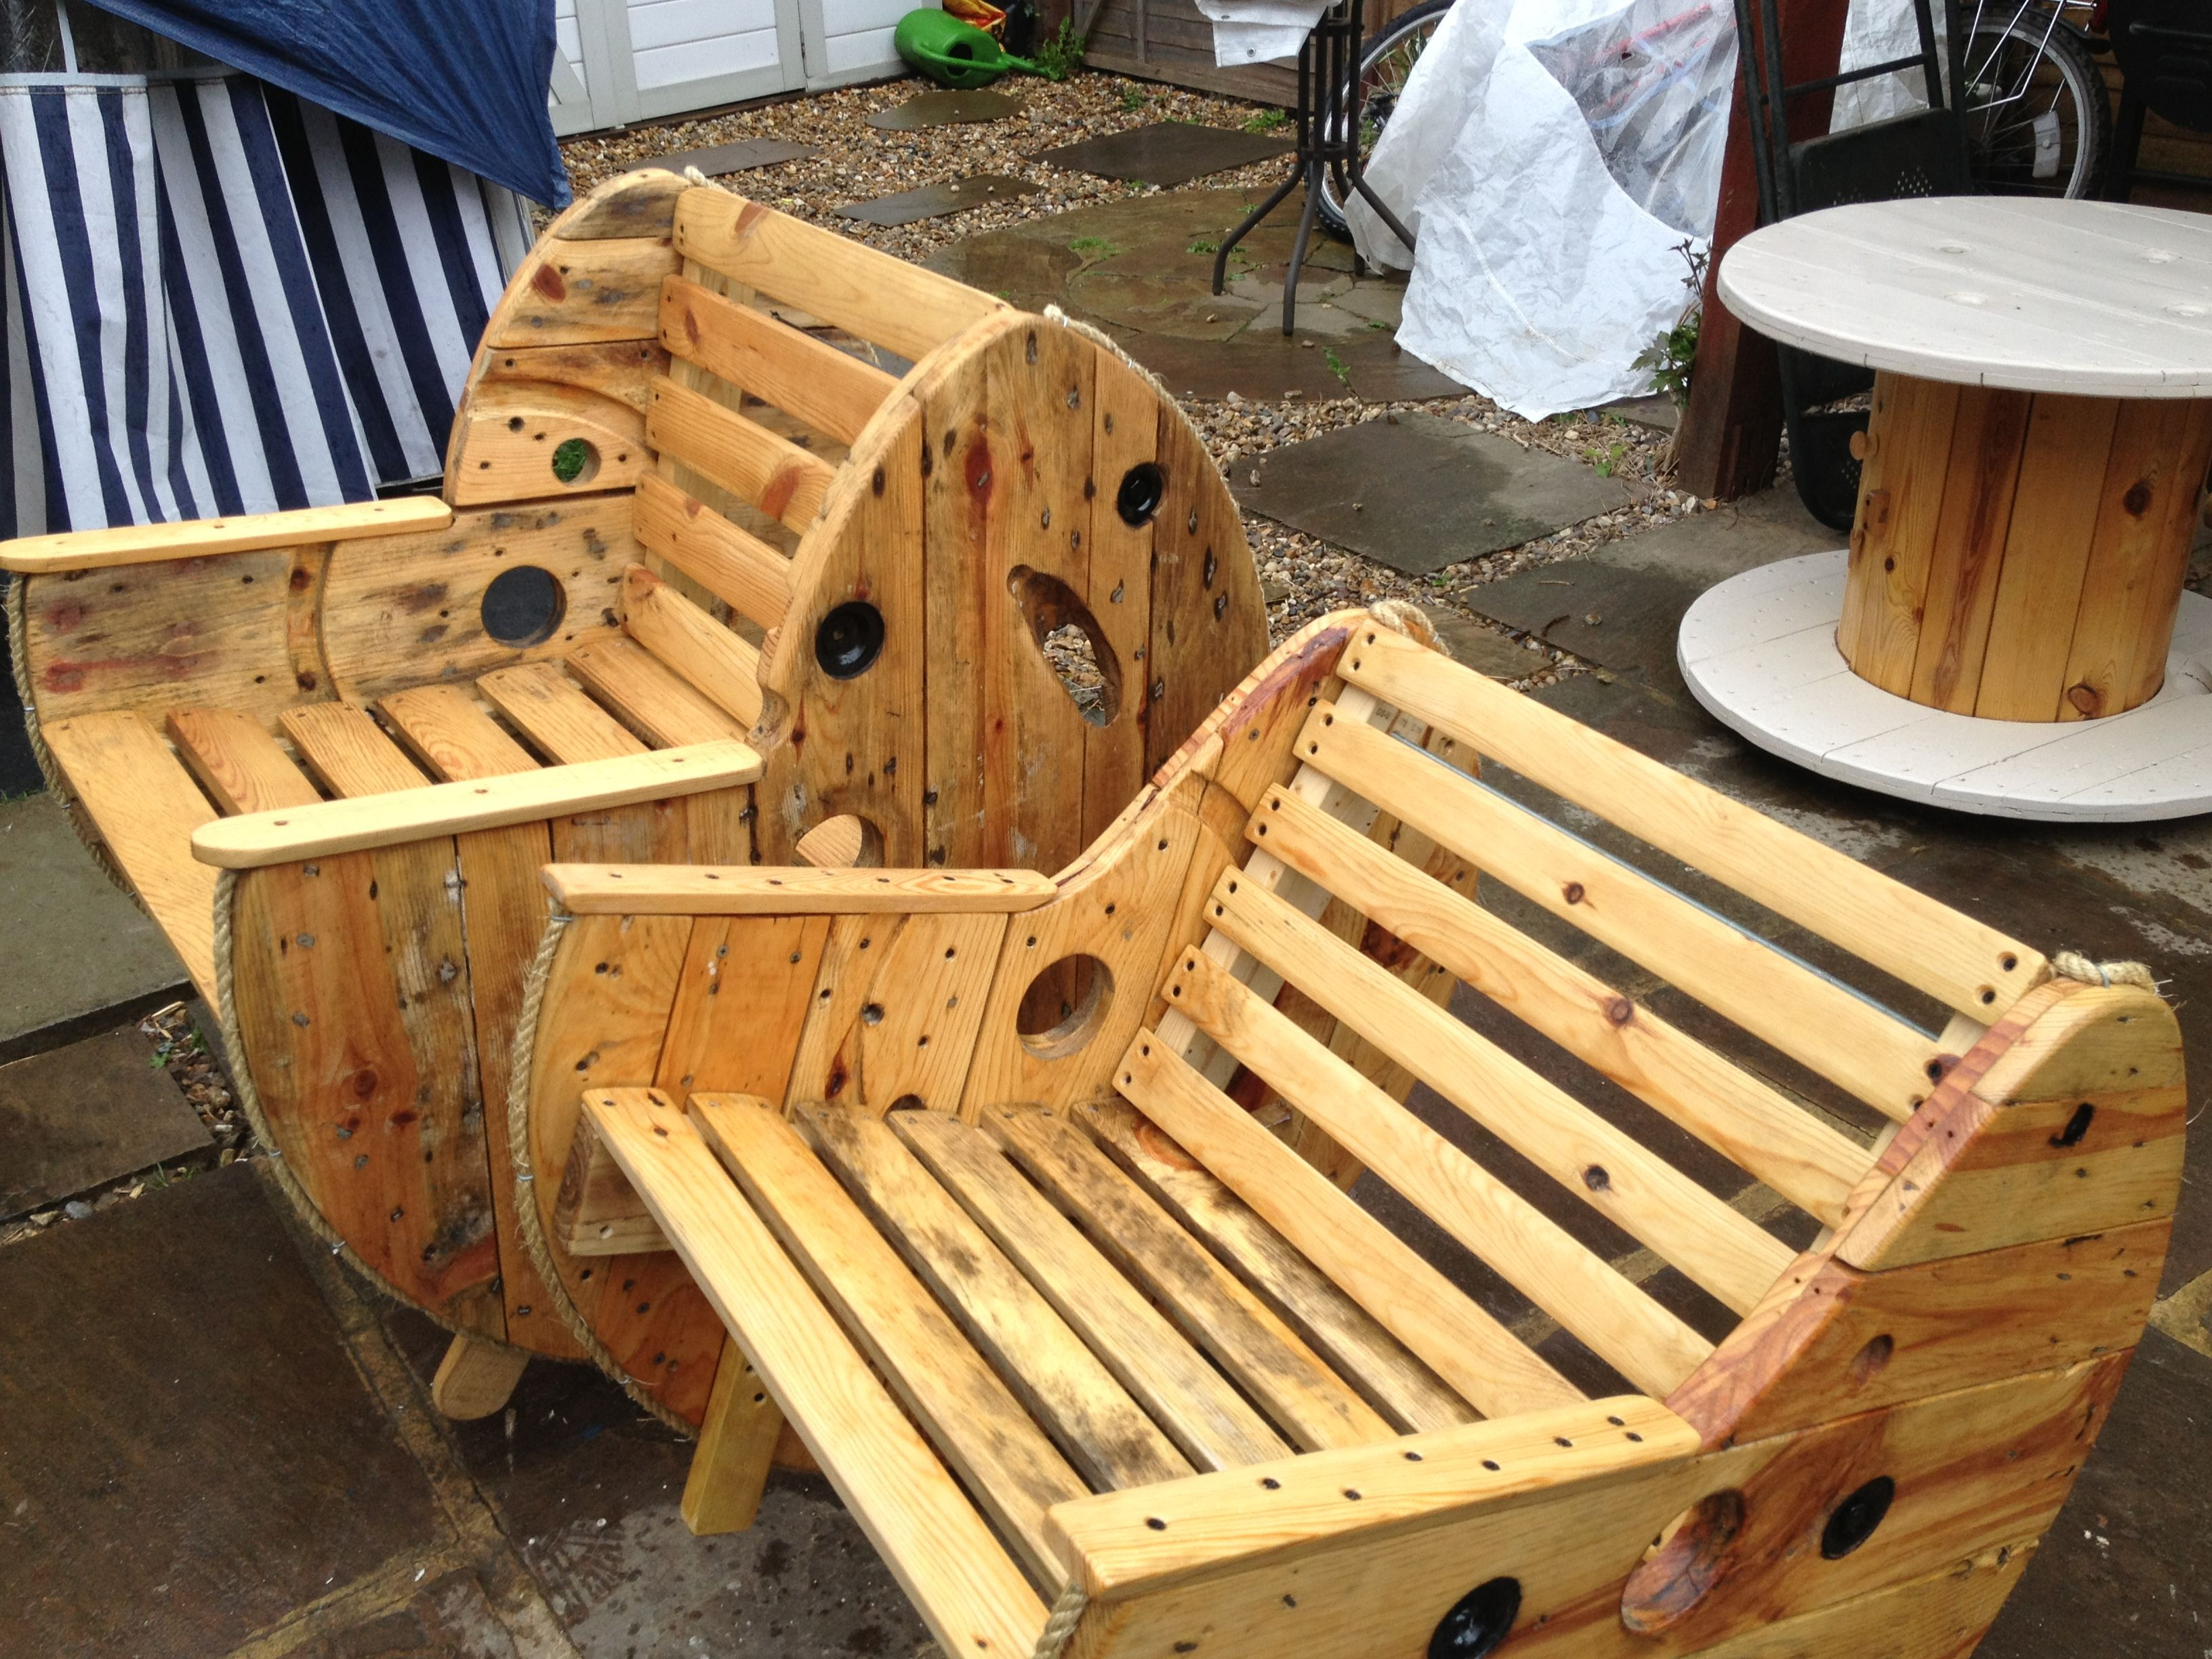 Wooden cable reel chairs available to buy, made to order @  cabletables@gmail.